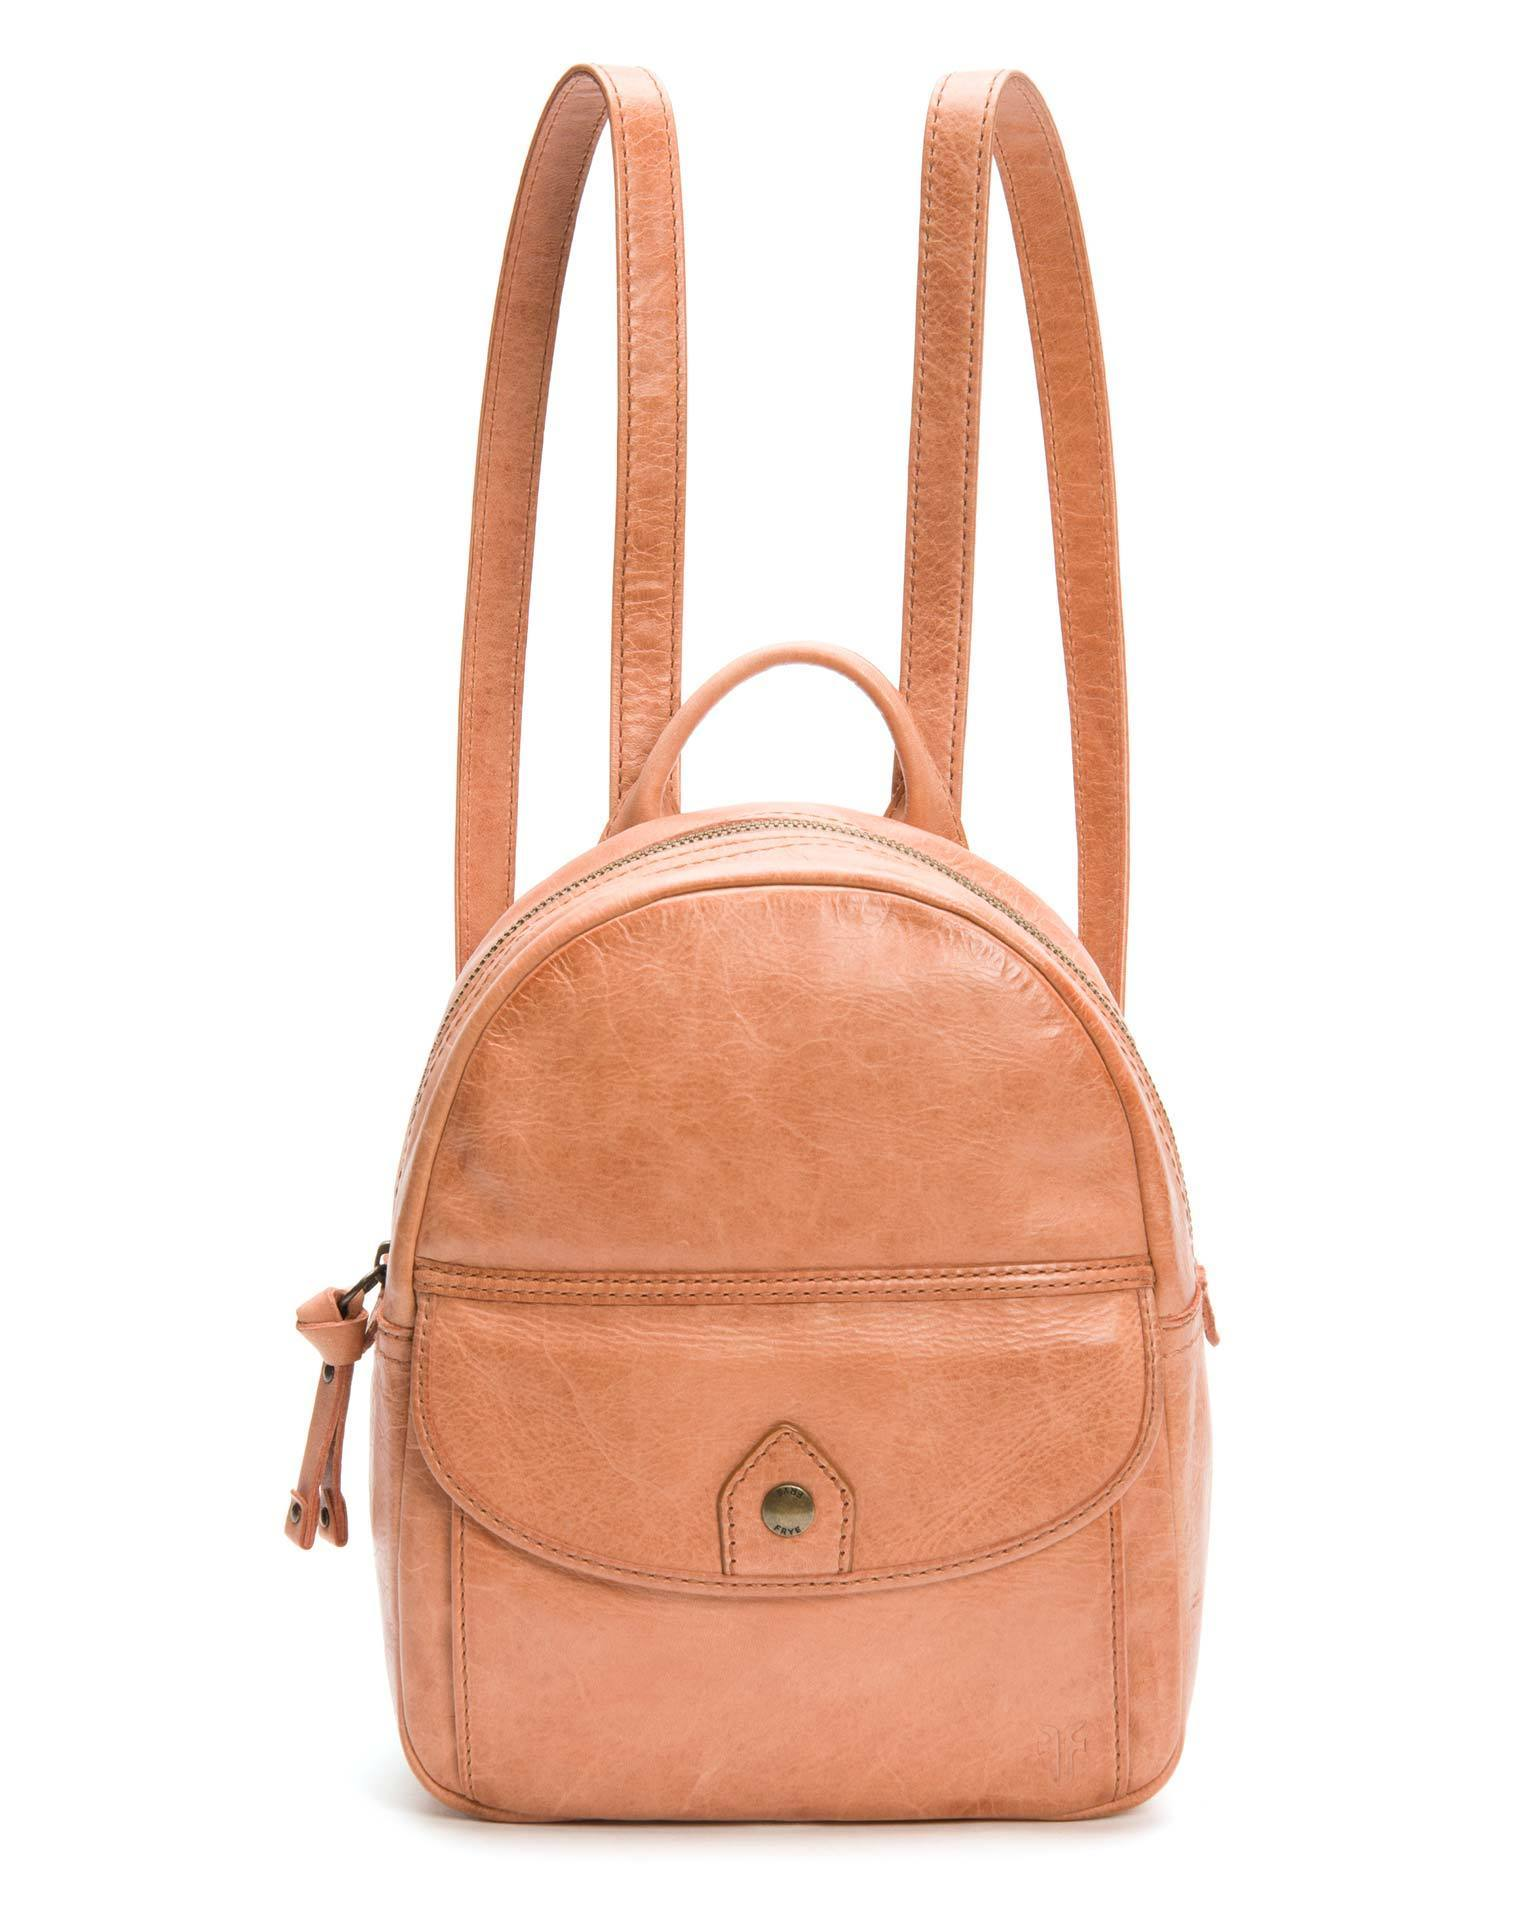 Frye Accessories Dusty Rose / O/S Melissa Mini Backpack